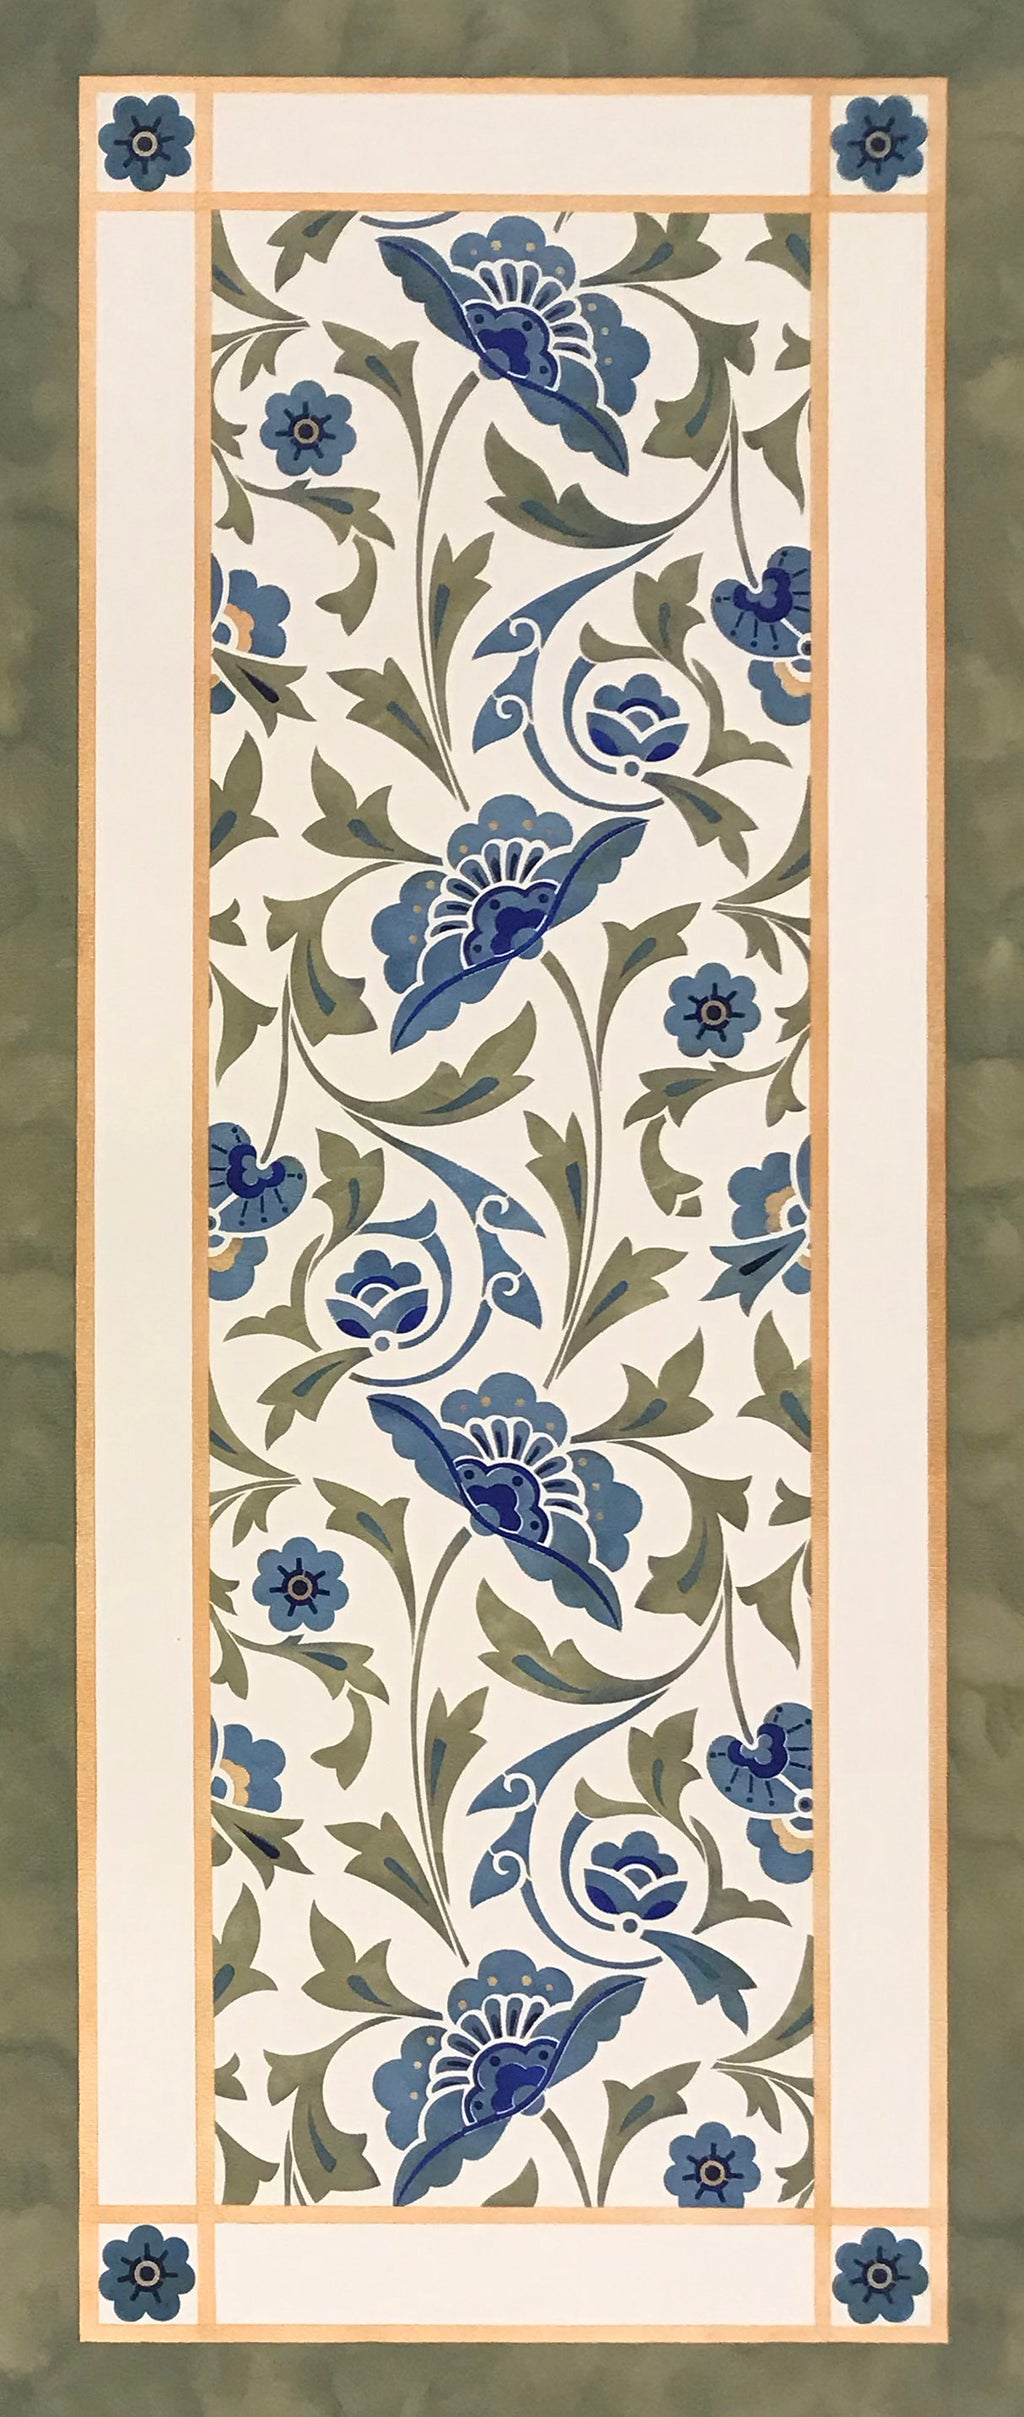 A full image of this floorcloth based on an all-over floral pattern by Christopher Dresser, c. 1875.